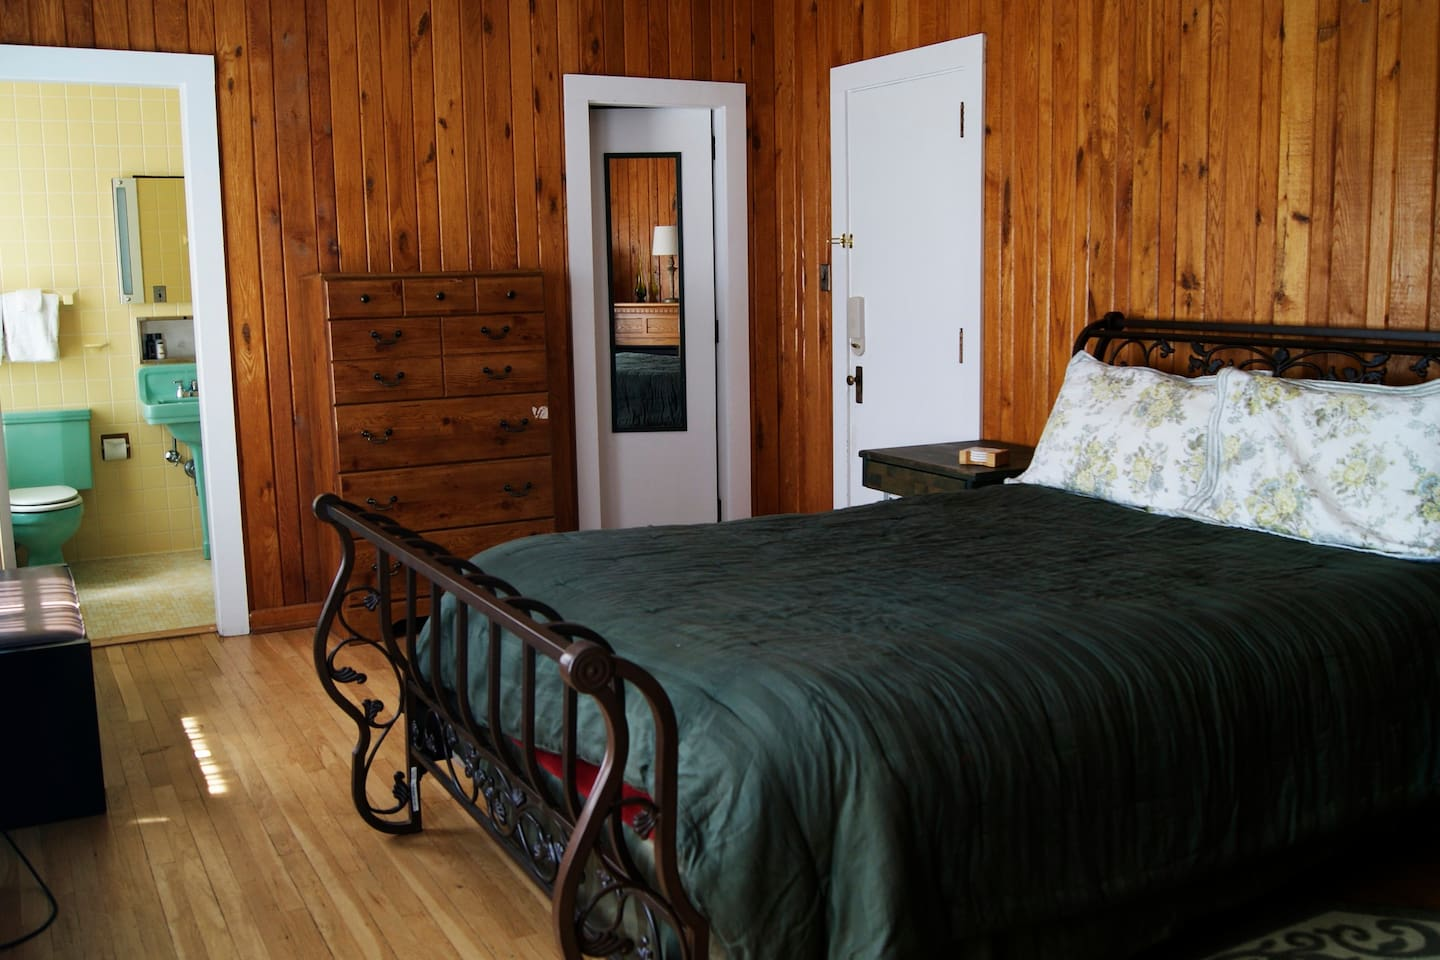 Emerald Room at the Lodge